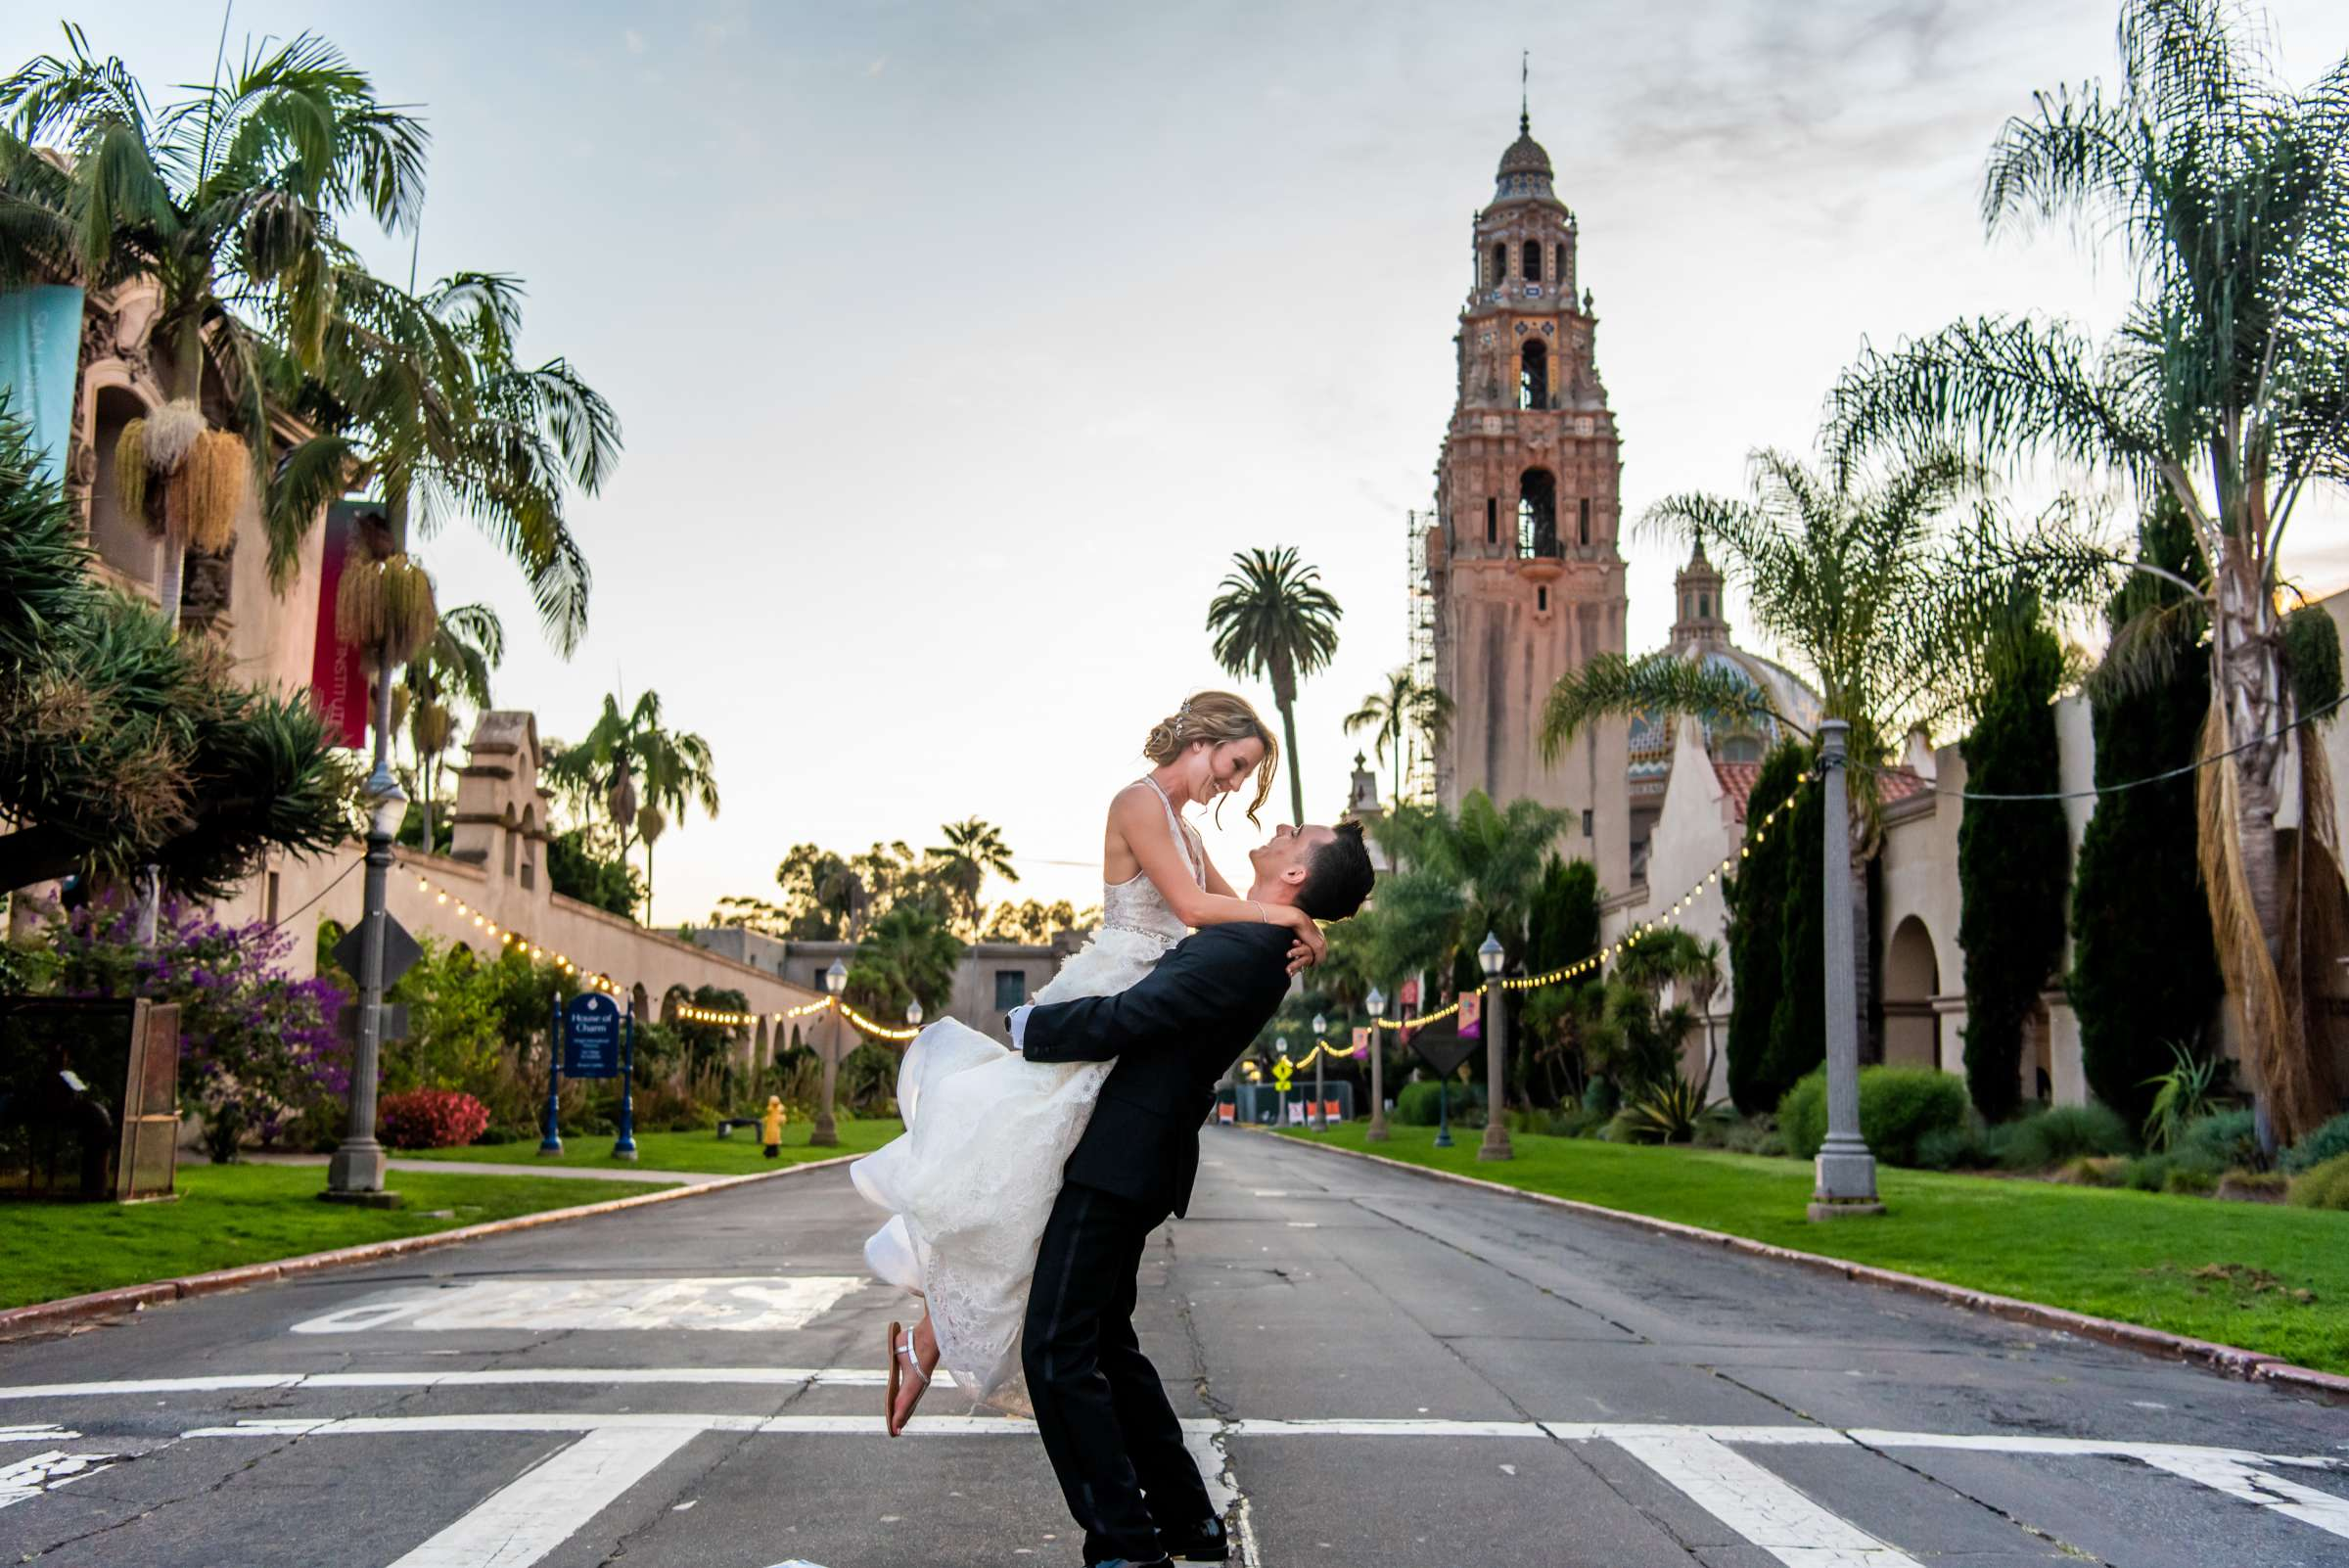 The Prado Wedding coordinated by Bliss Events, Sara and Marvin Wedding Photo #559642 by True Photography